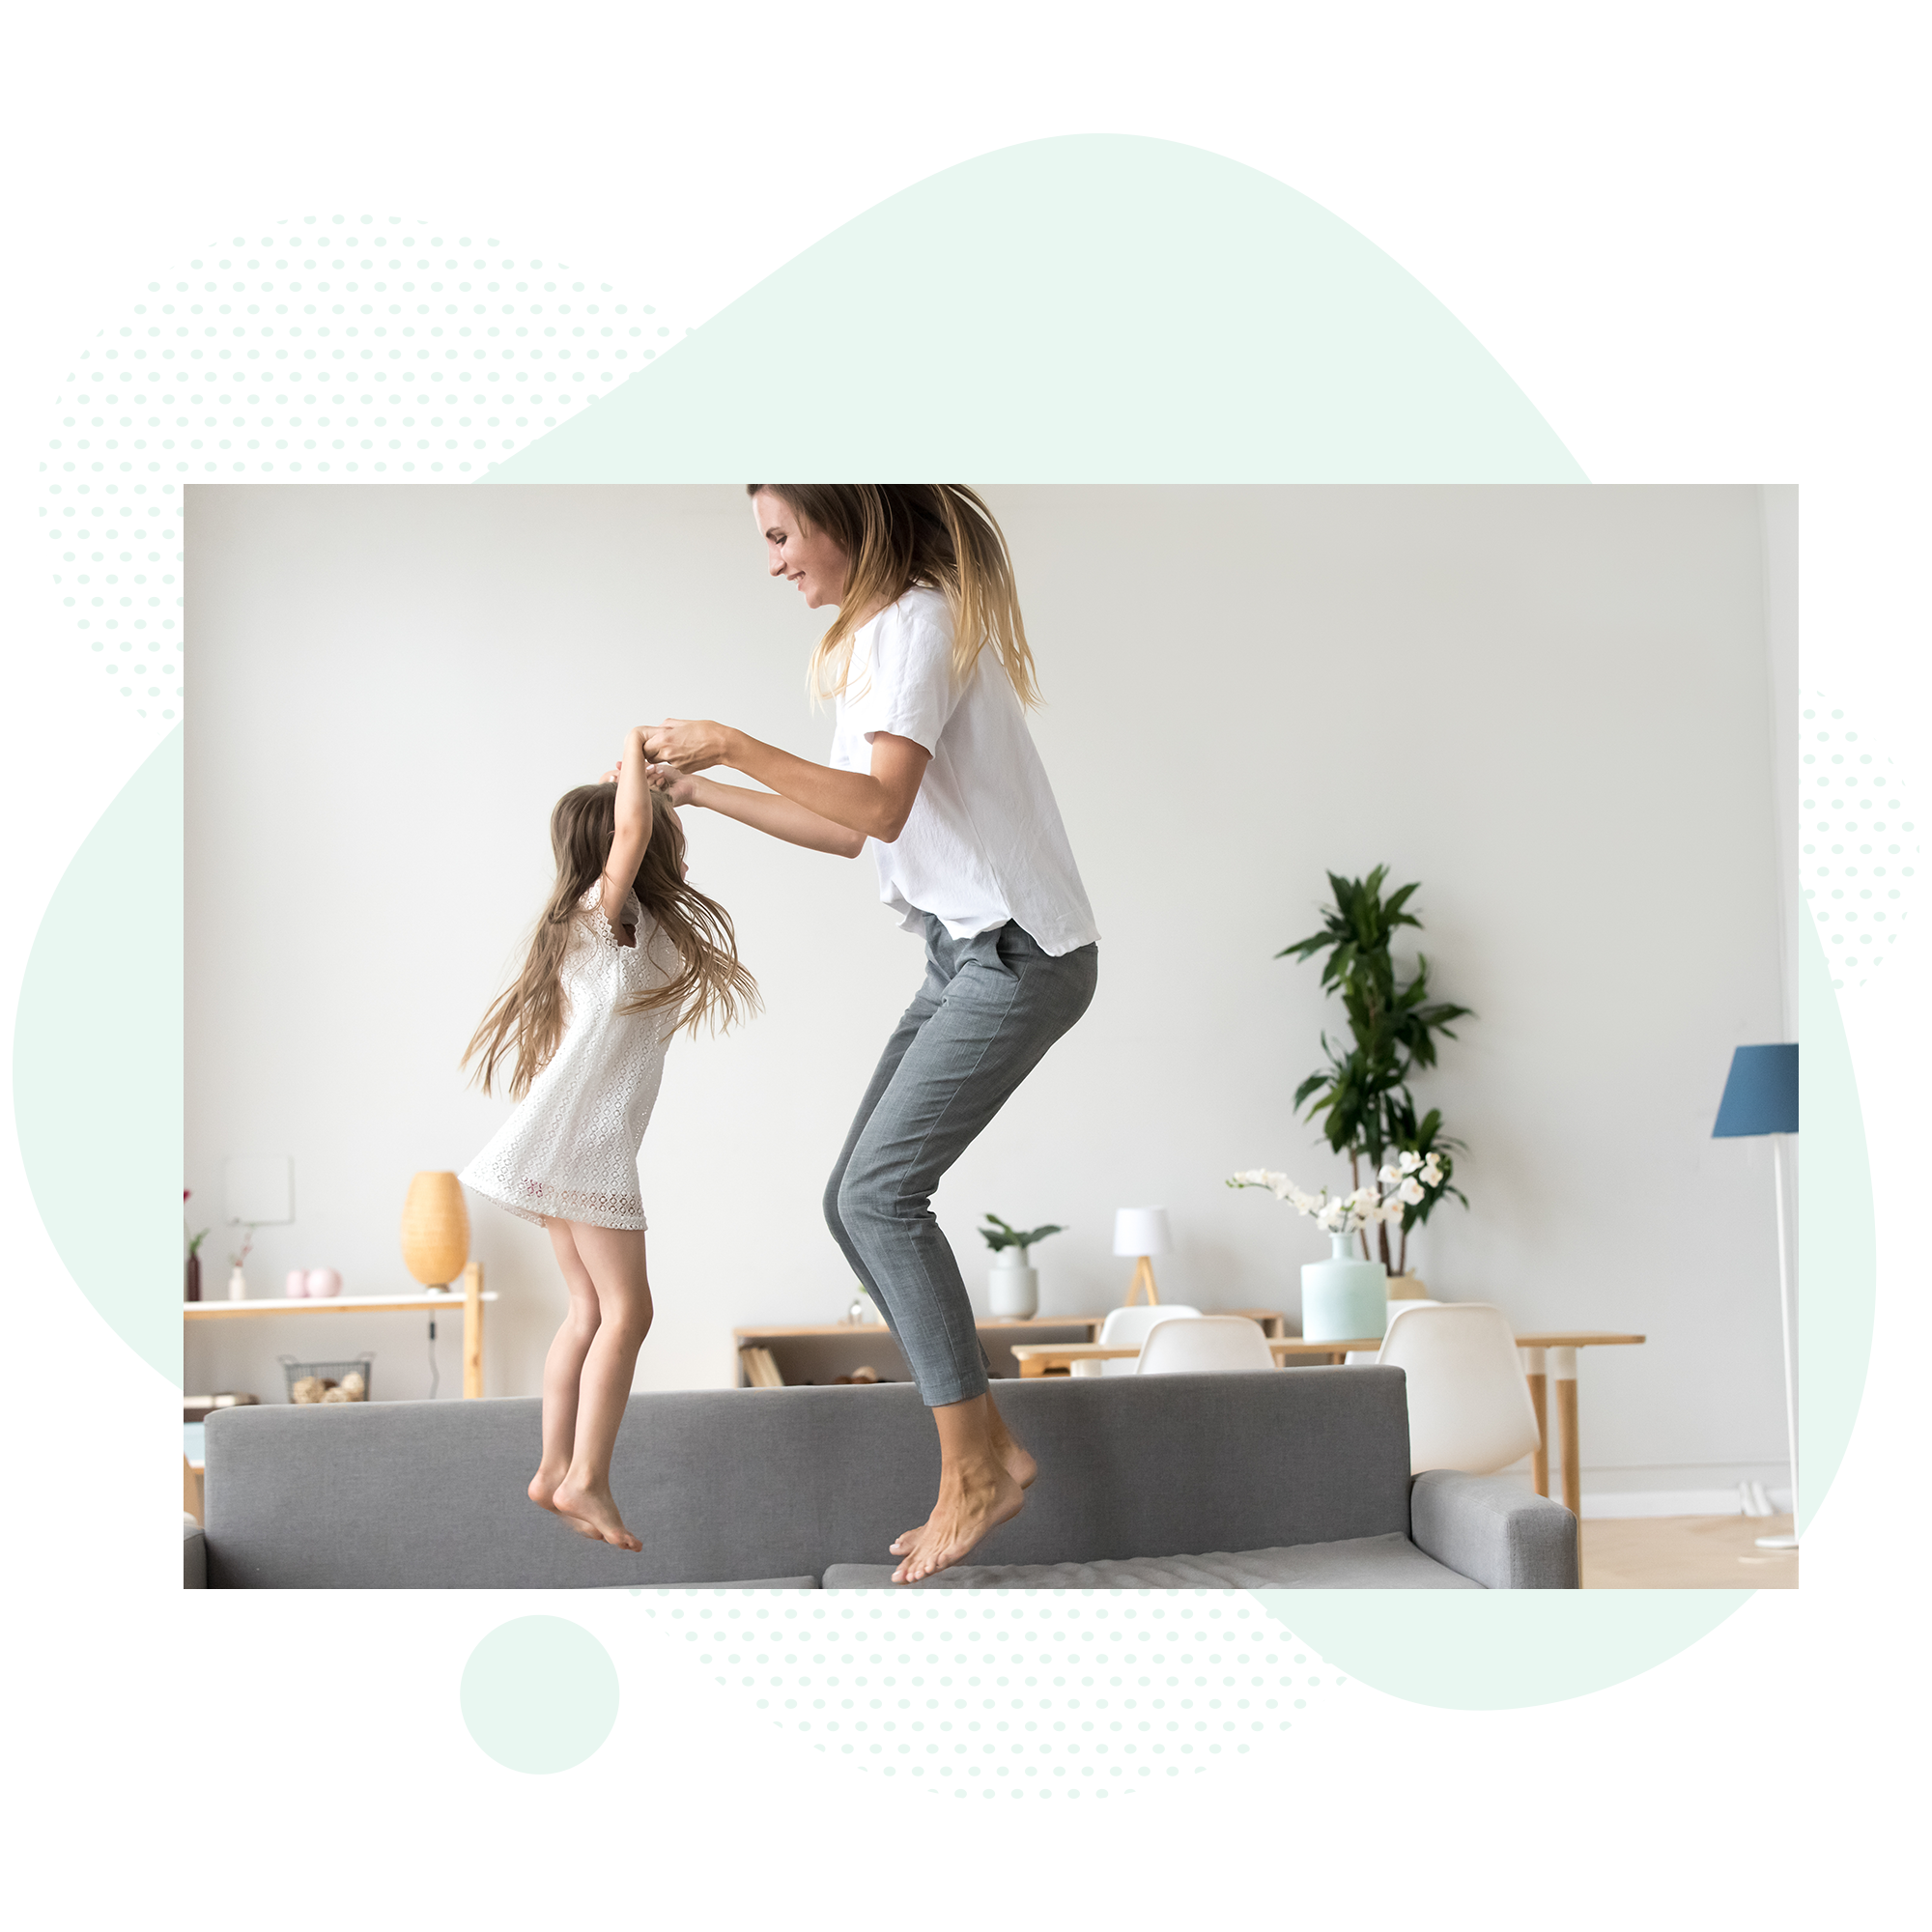 Mom and daughter jumping on a couch